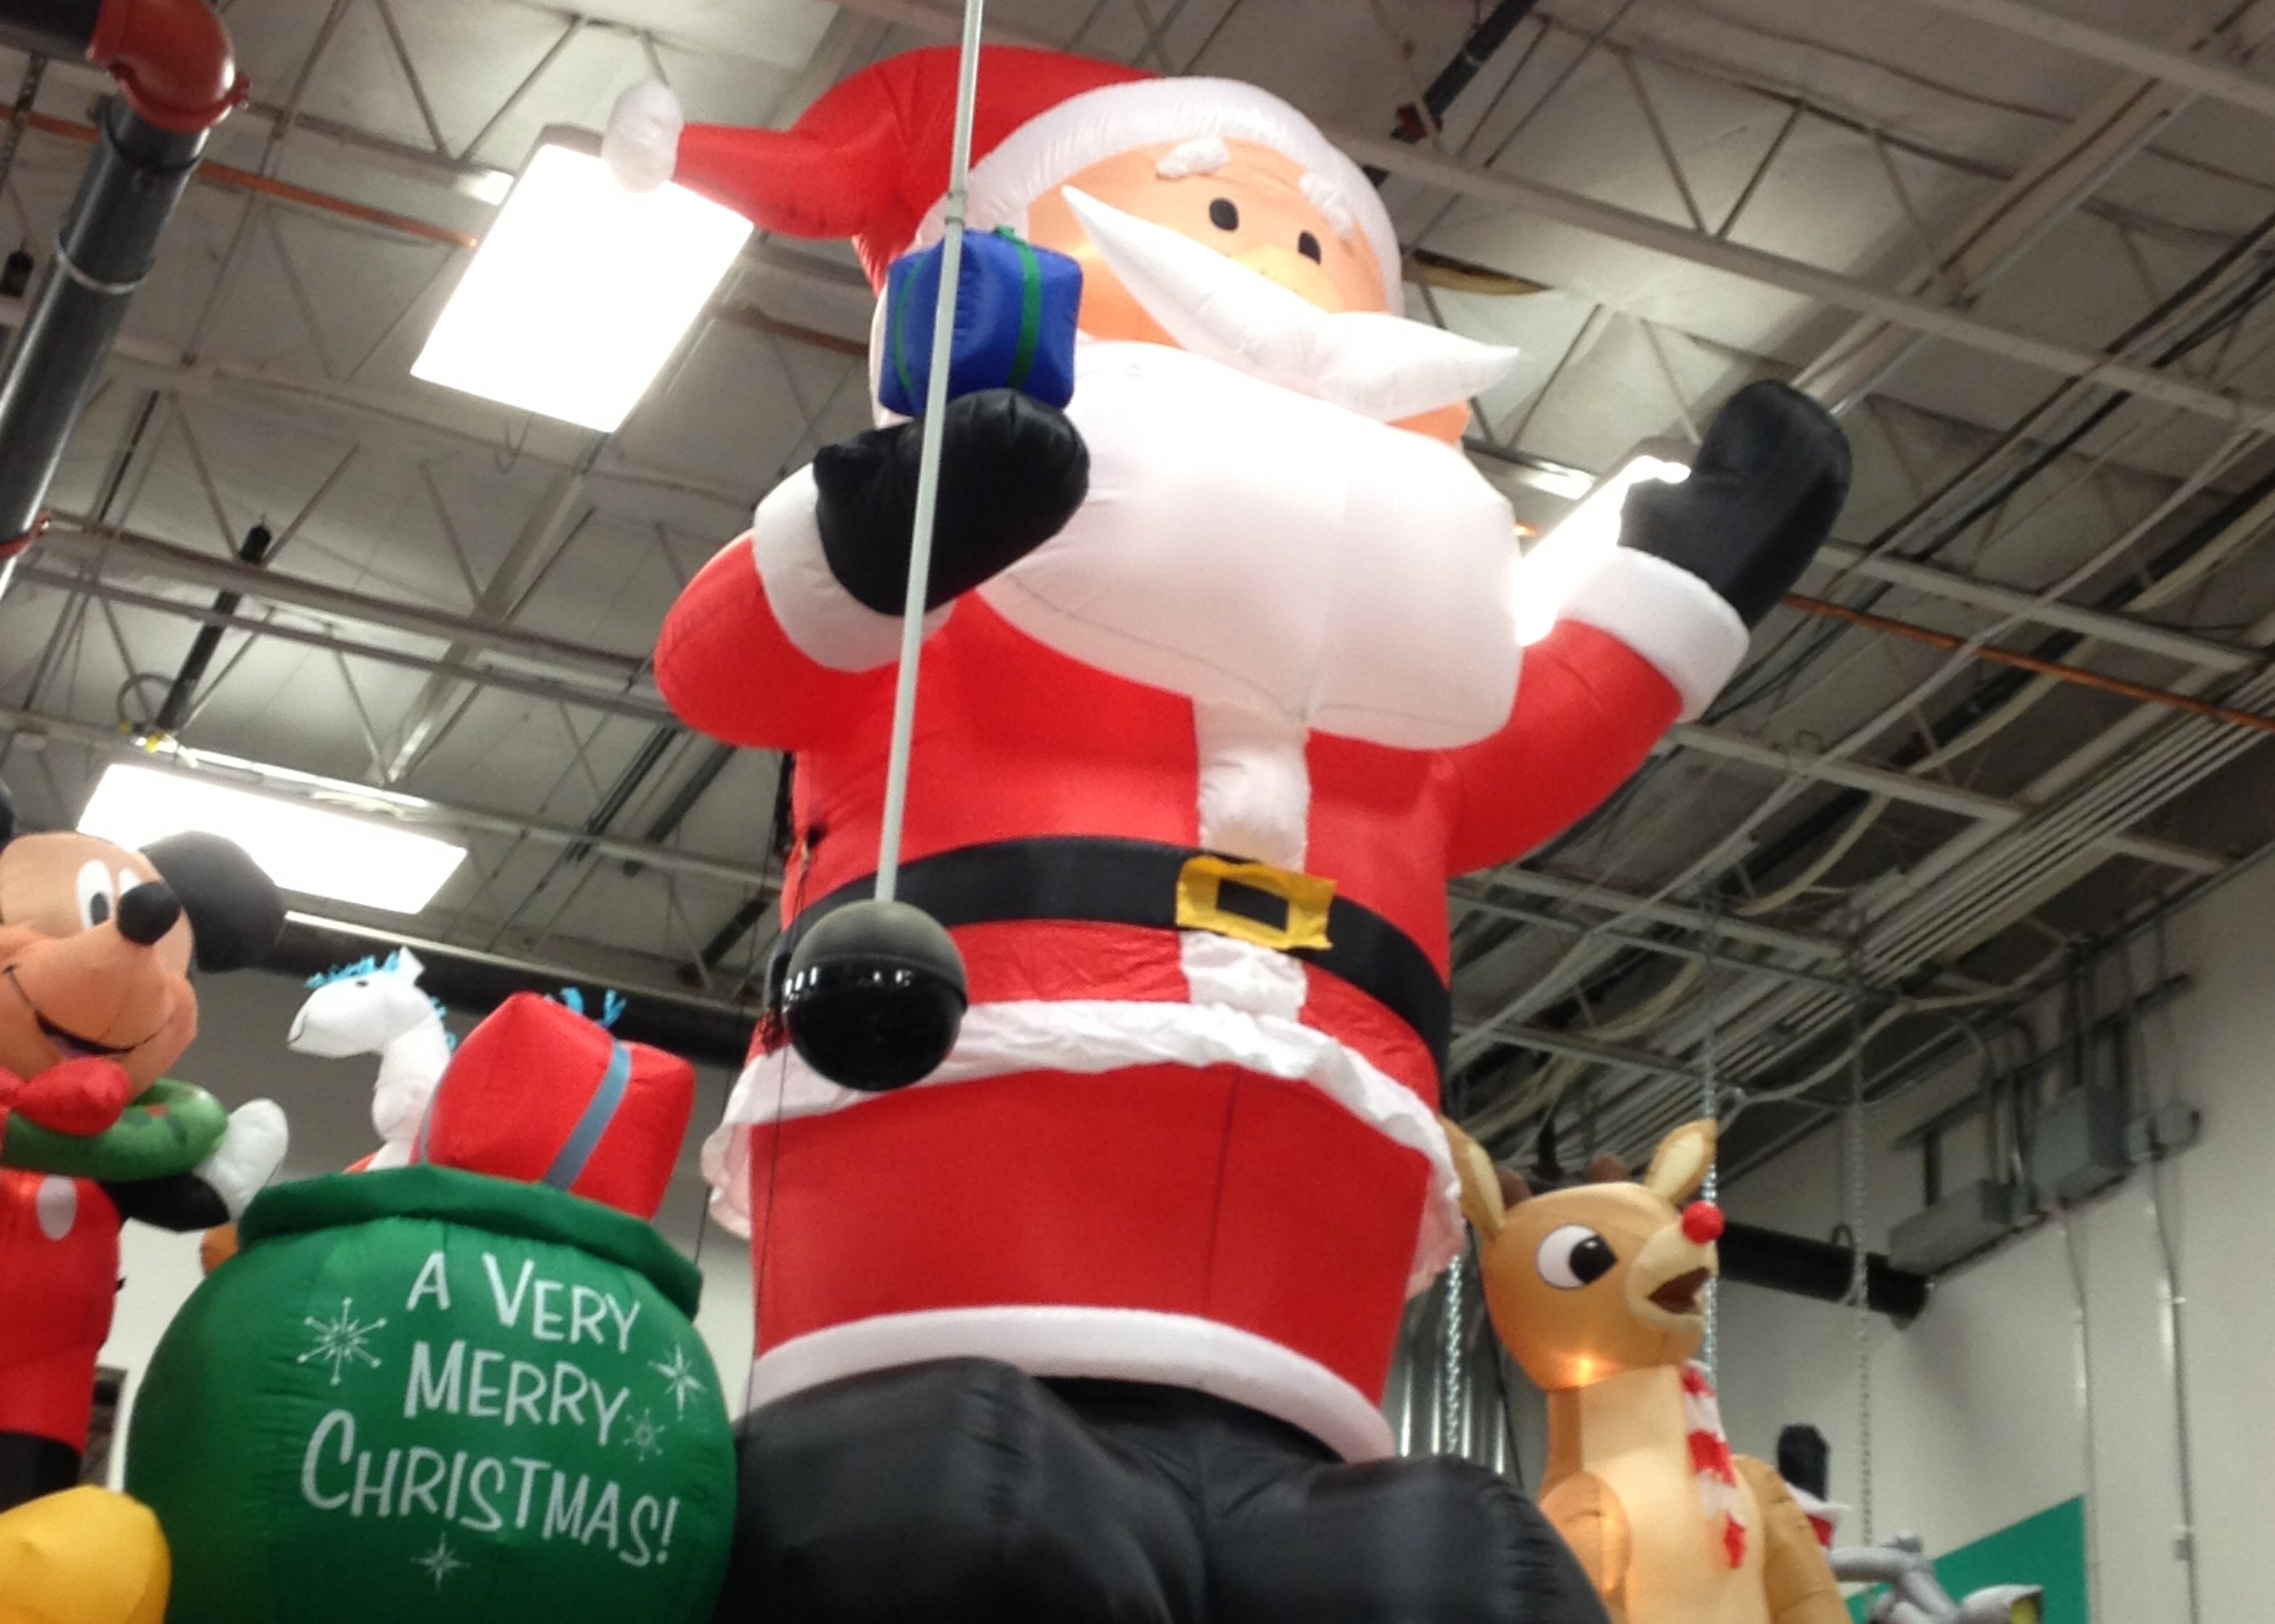 i went to lowes today to check out their christmas decorations and i saw what i think is the biggest inflatable santa ive ever seen its 14 feet tall